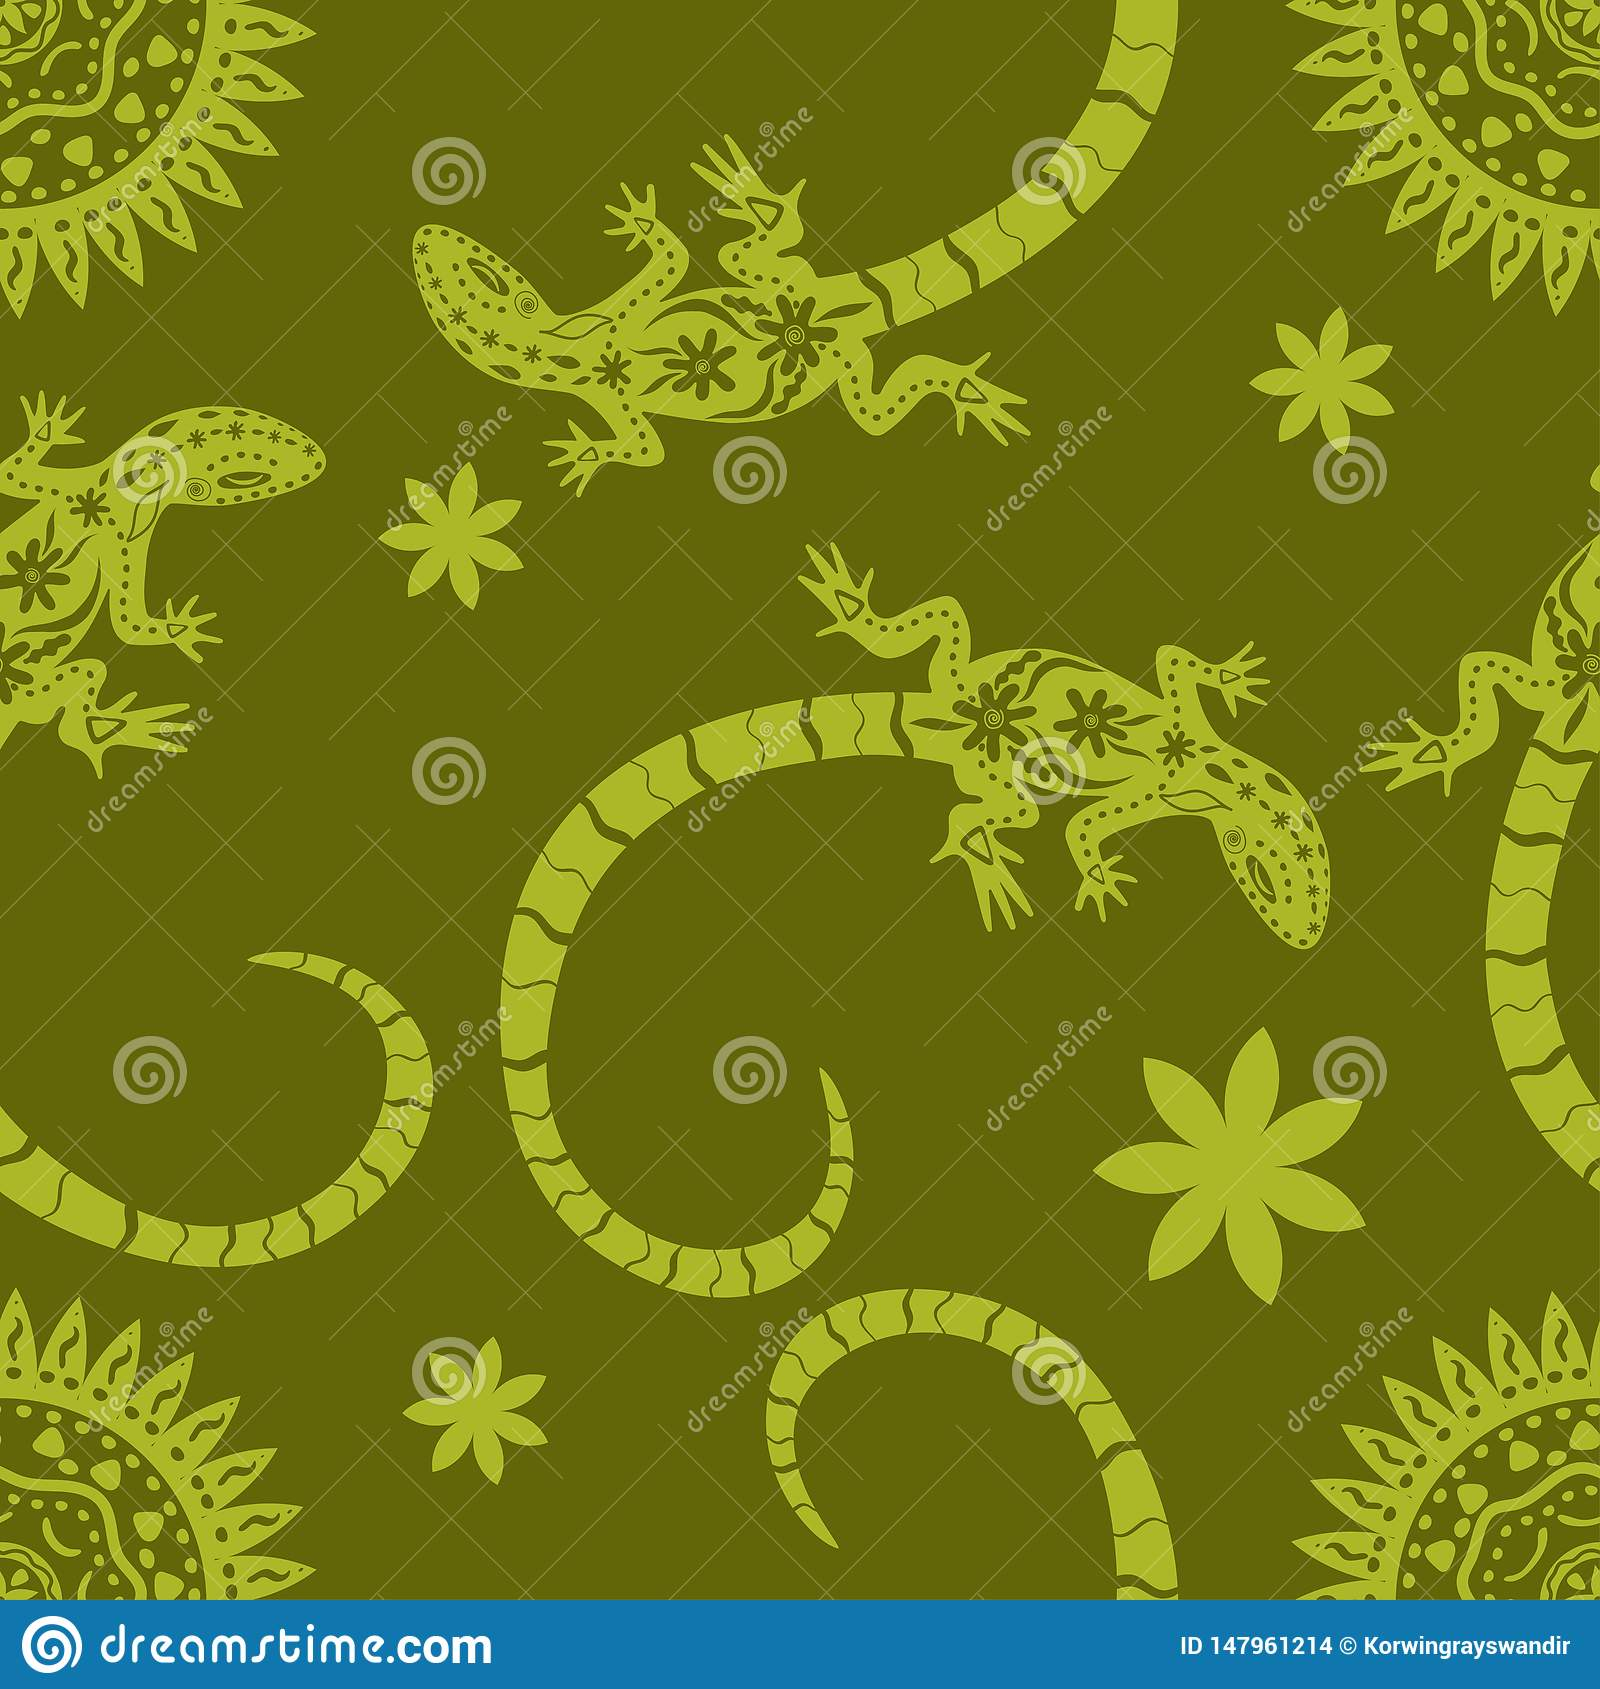 Tropical background of flowers, sun and lizards. Seamless pattern Exotic vector illustration. Jungle flat print